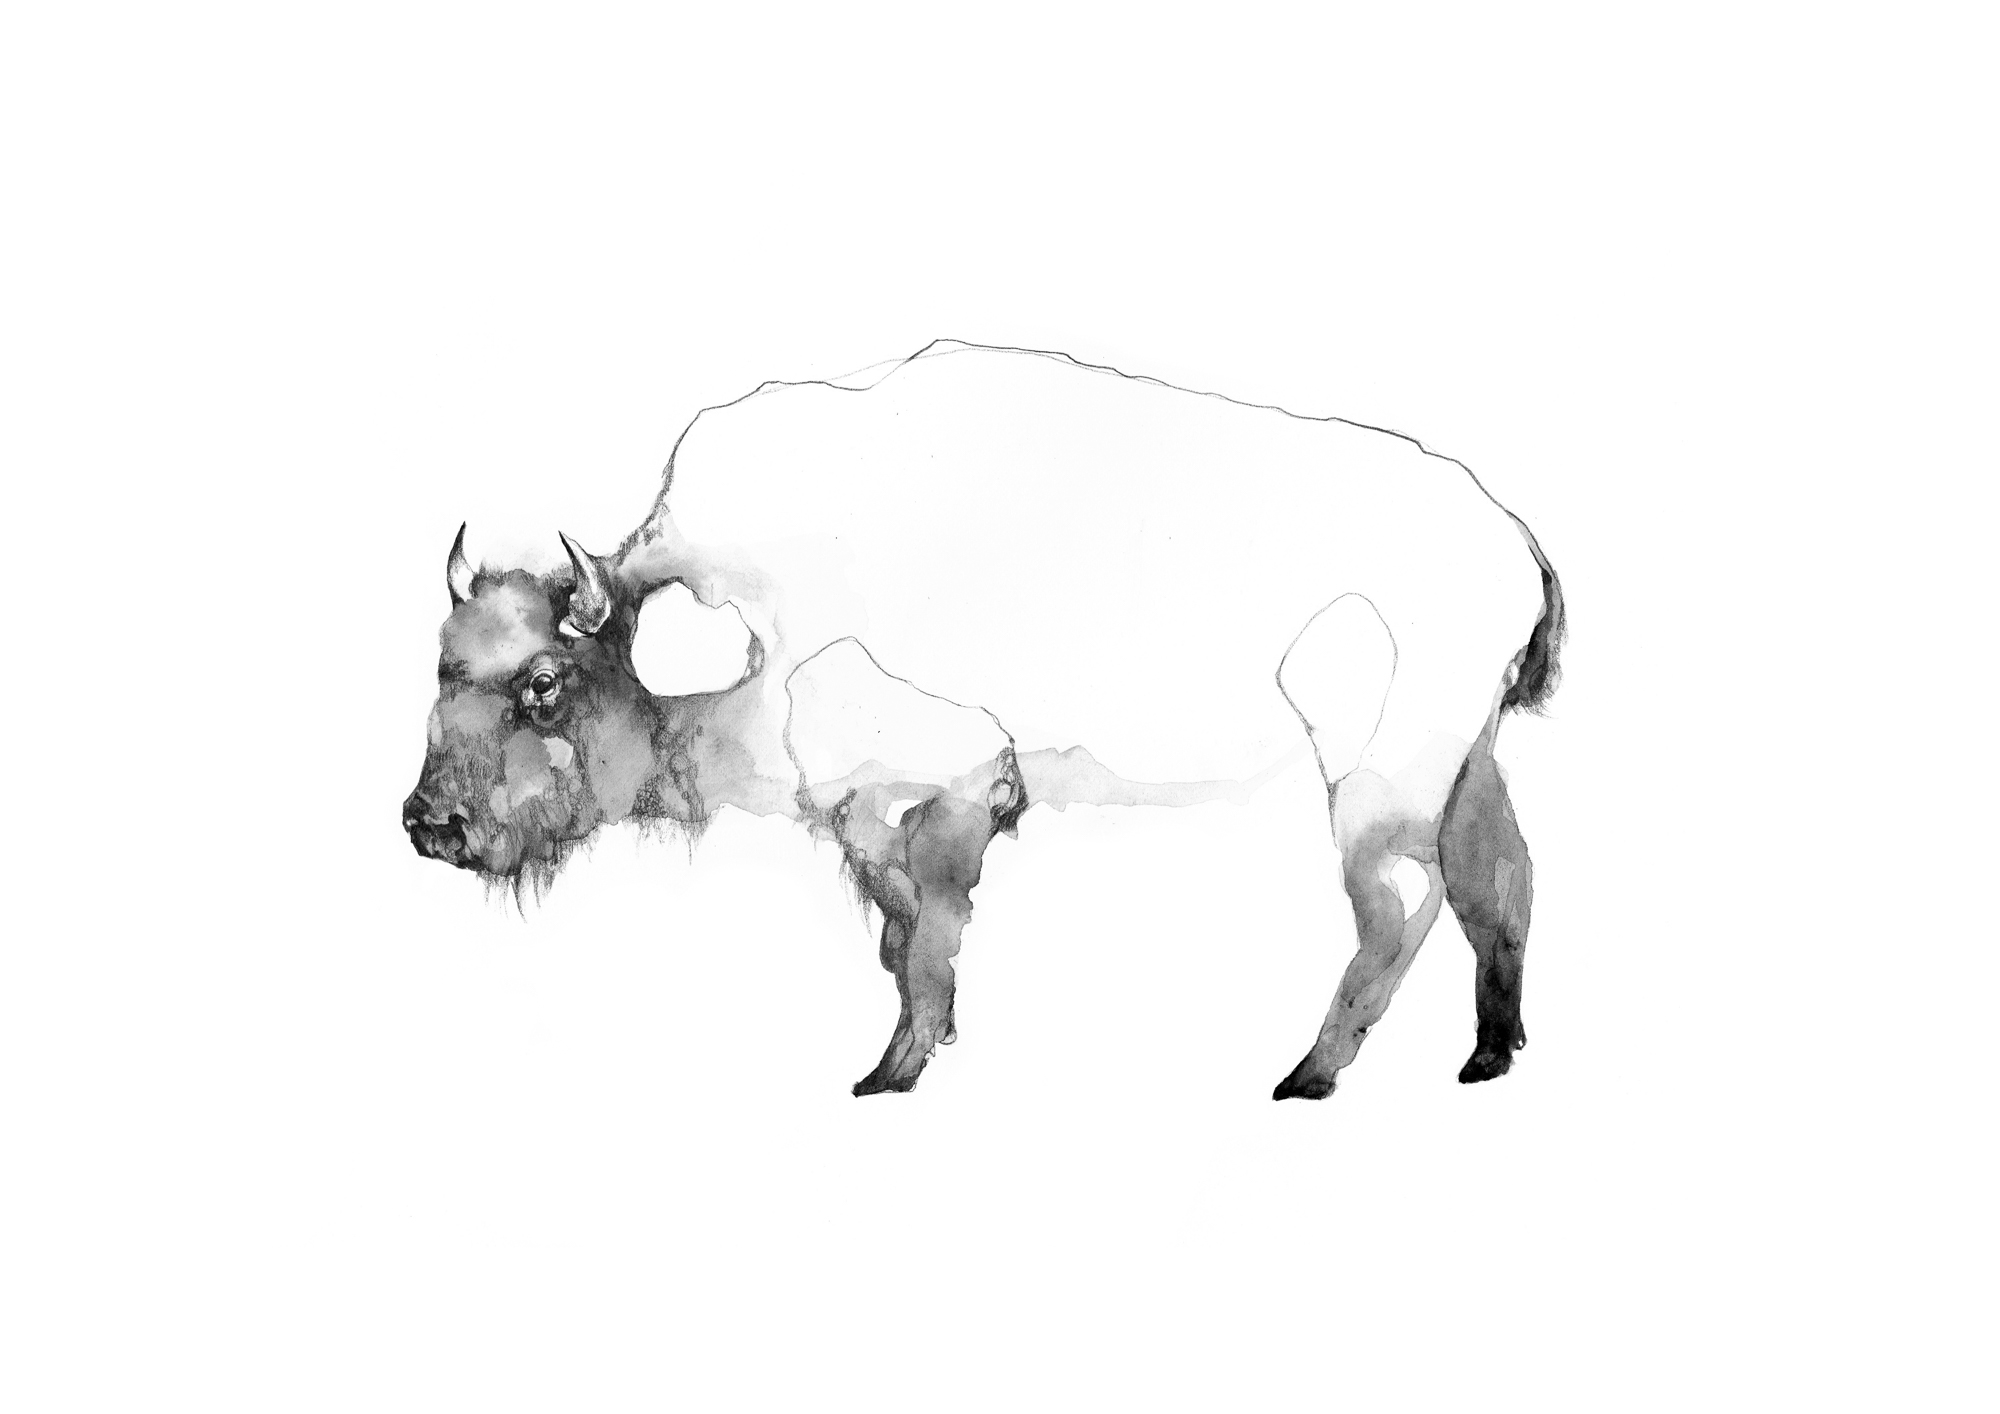 1-Bec_Kilpatrick_Illustration_Sea_Landbison1